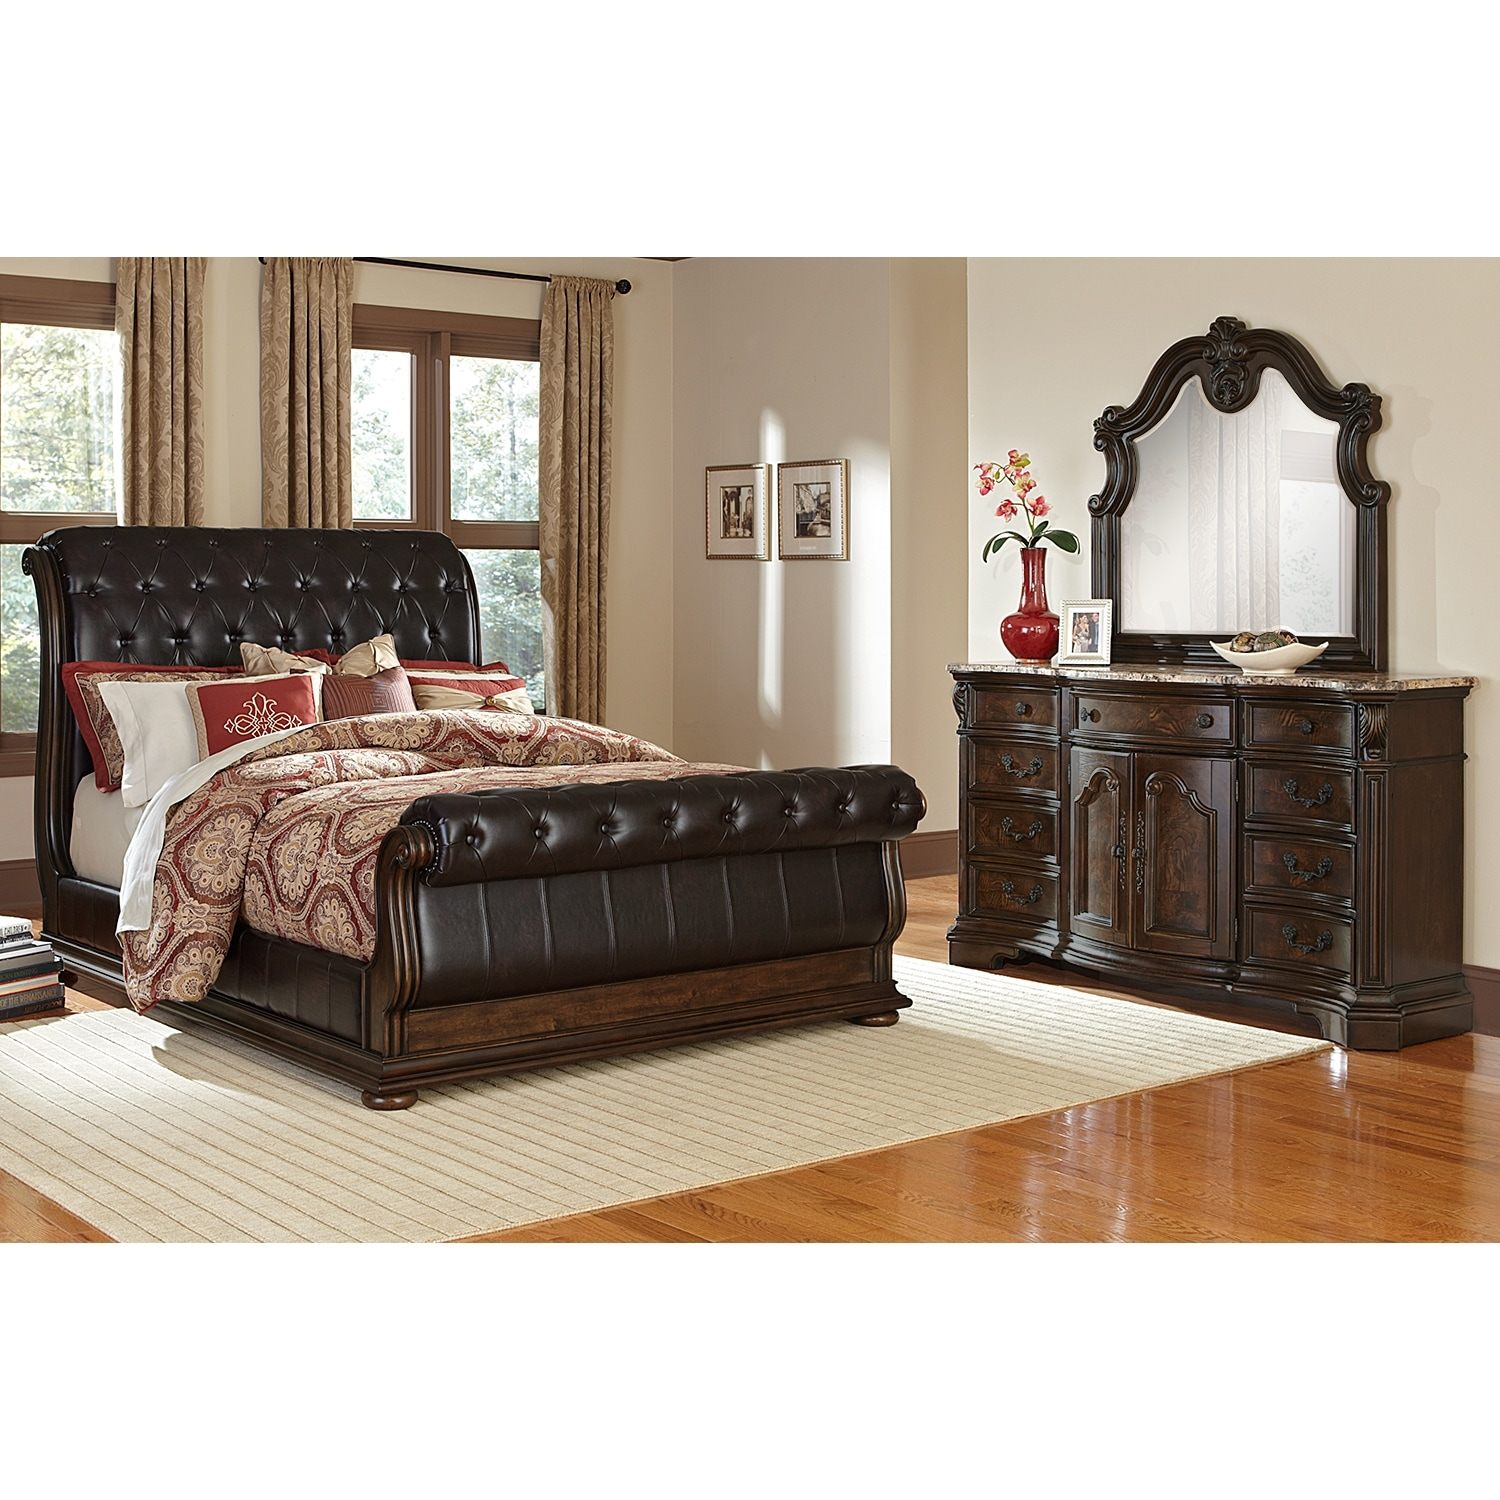 Value City Furniture Myideasbedroomcom